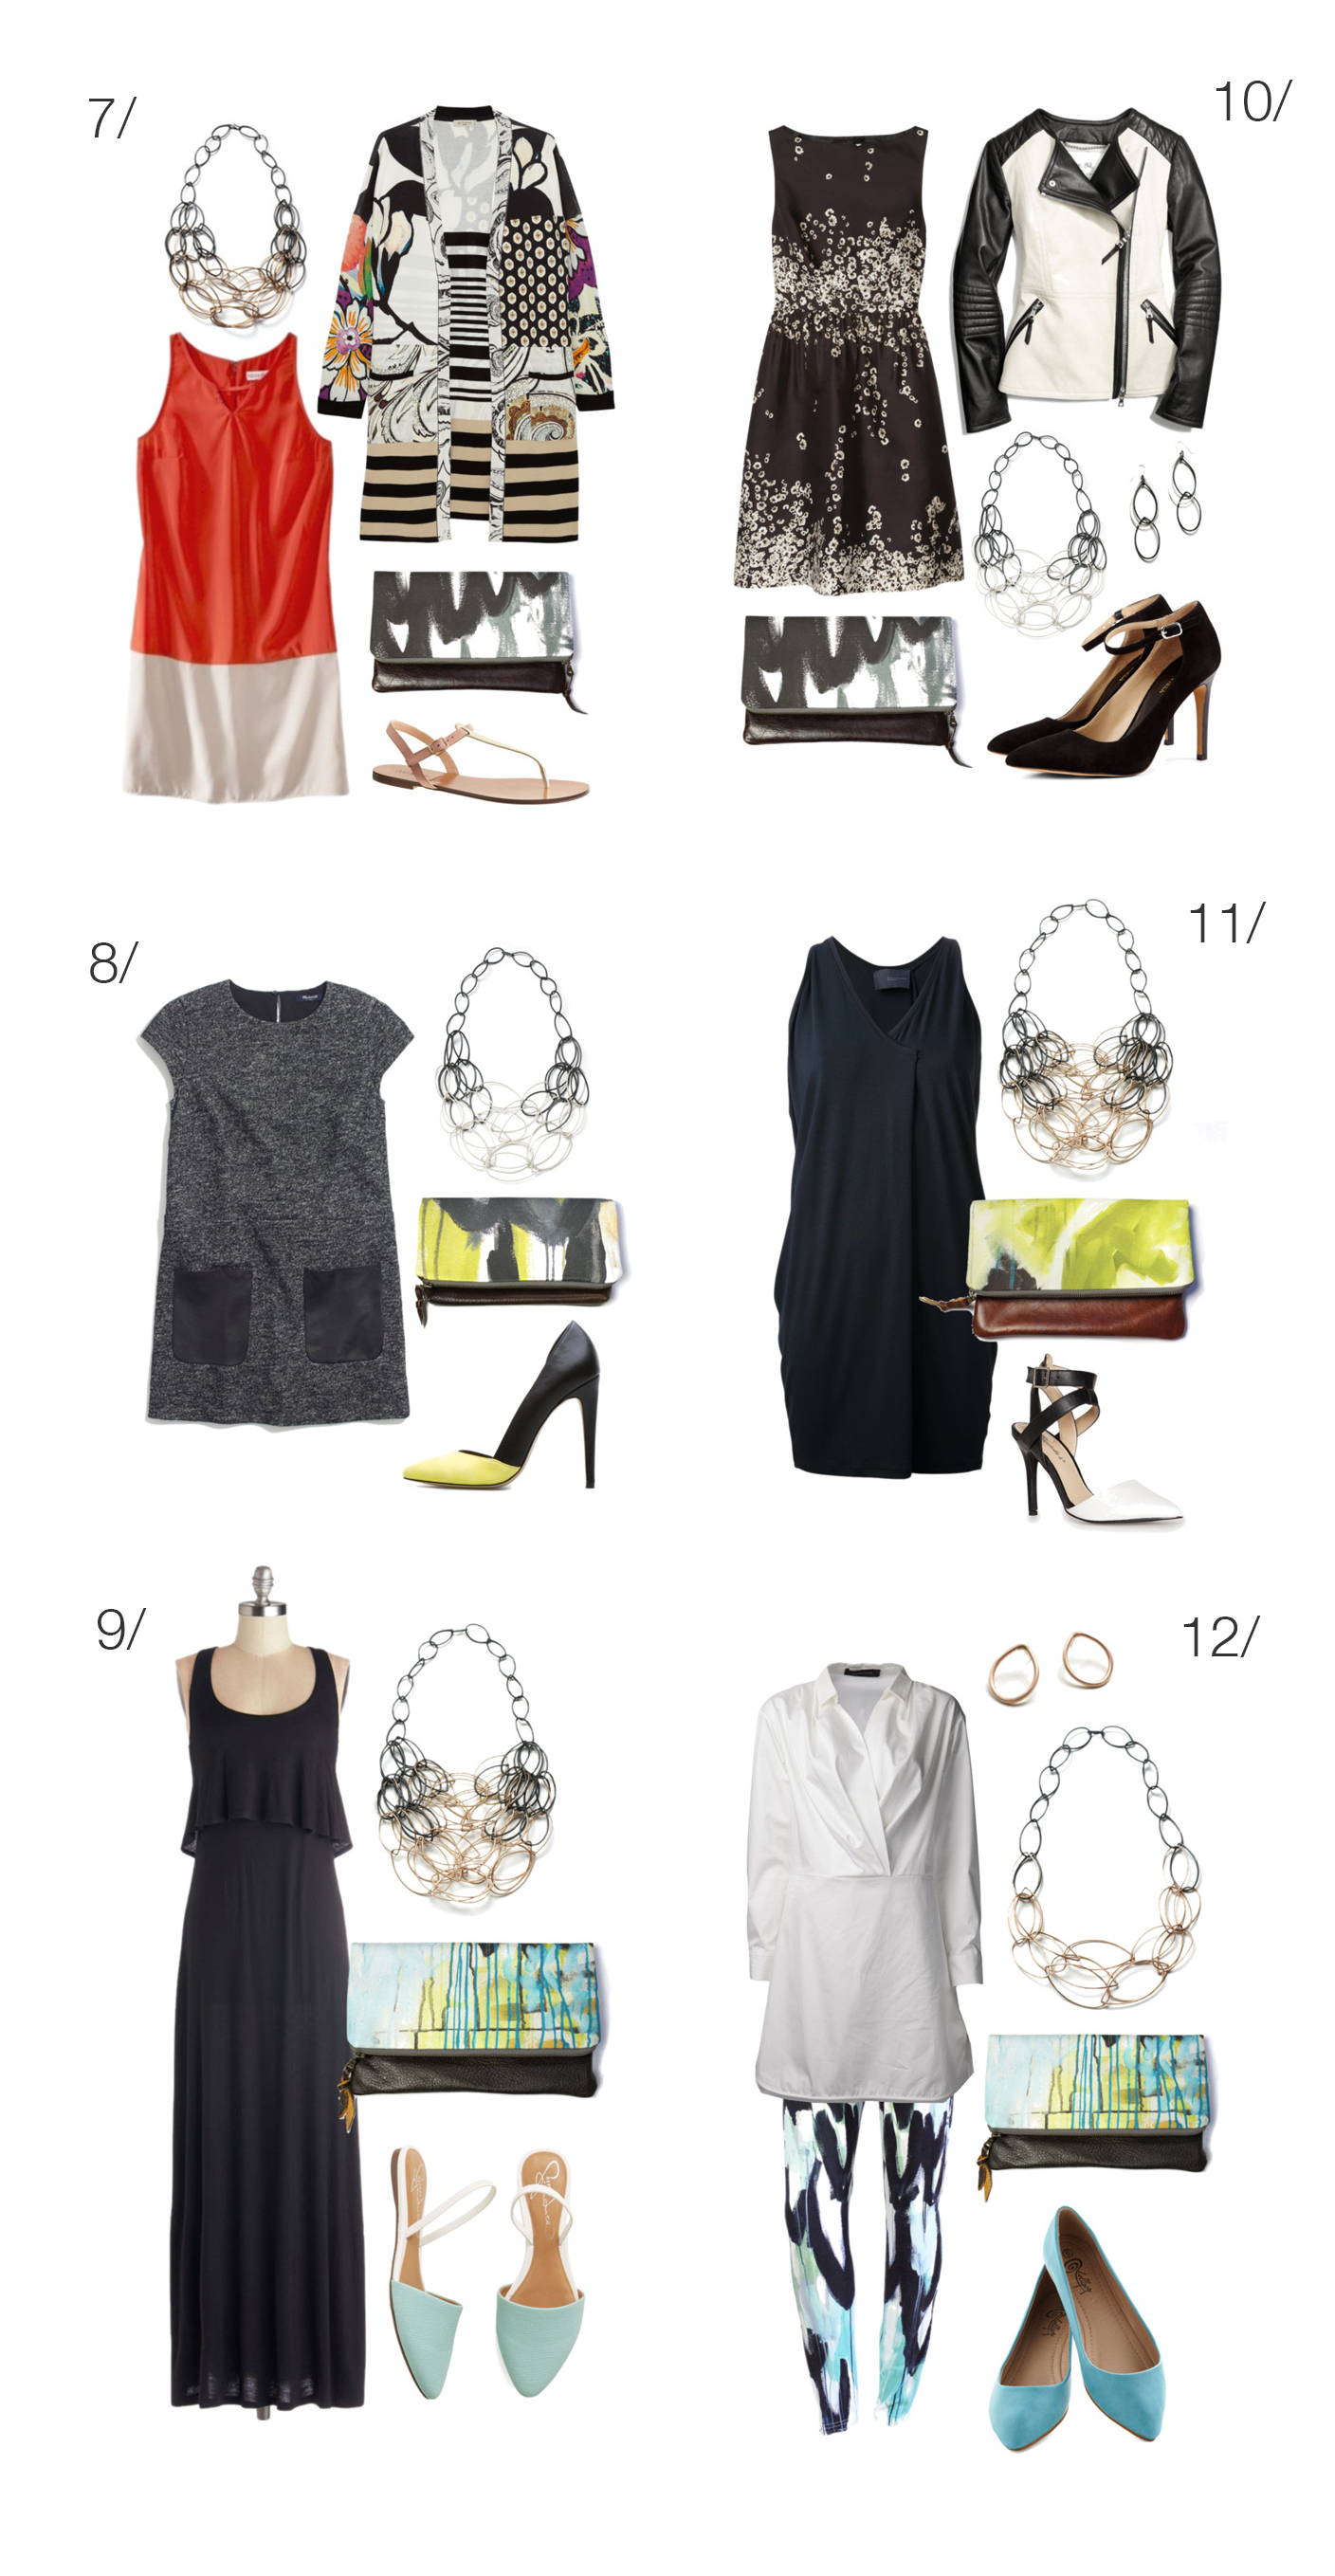 what to wear with a statement necklace - 12 outfit ideas - via megan auman